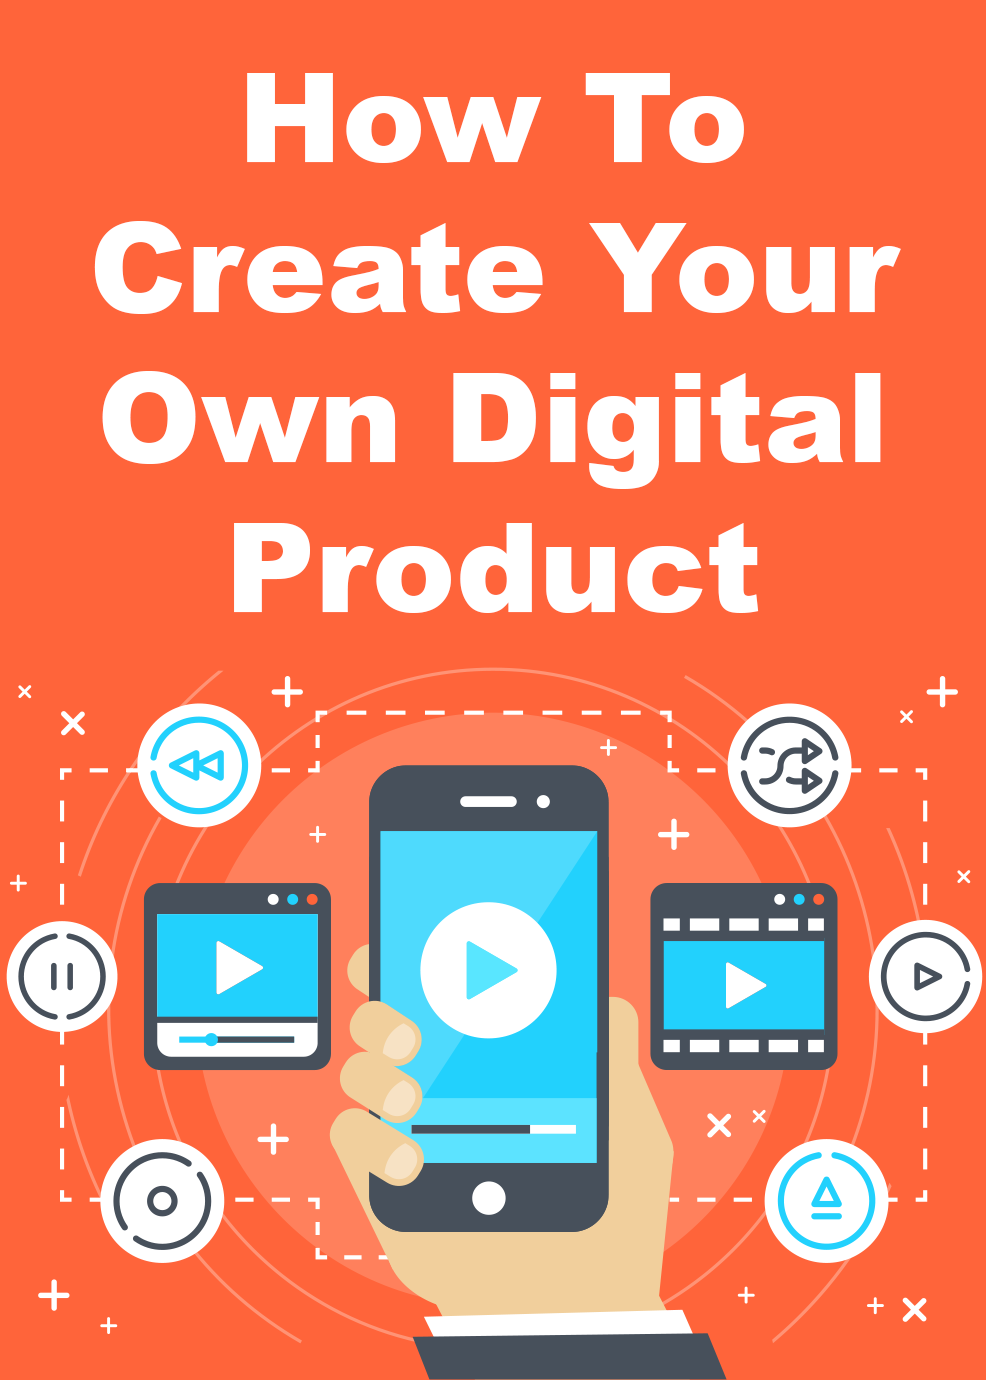 How to Create Your Own Digital Product